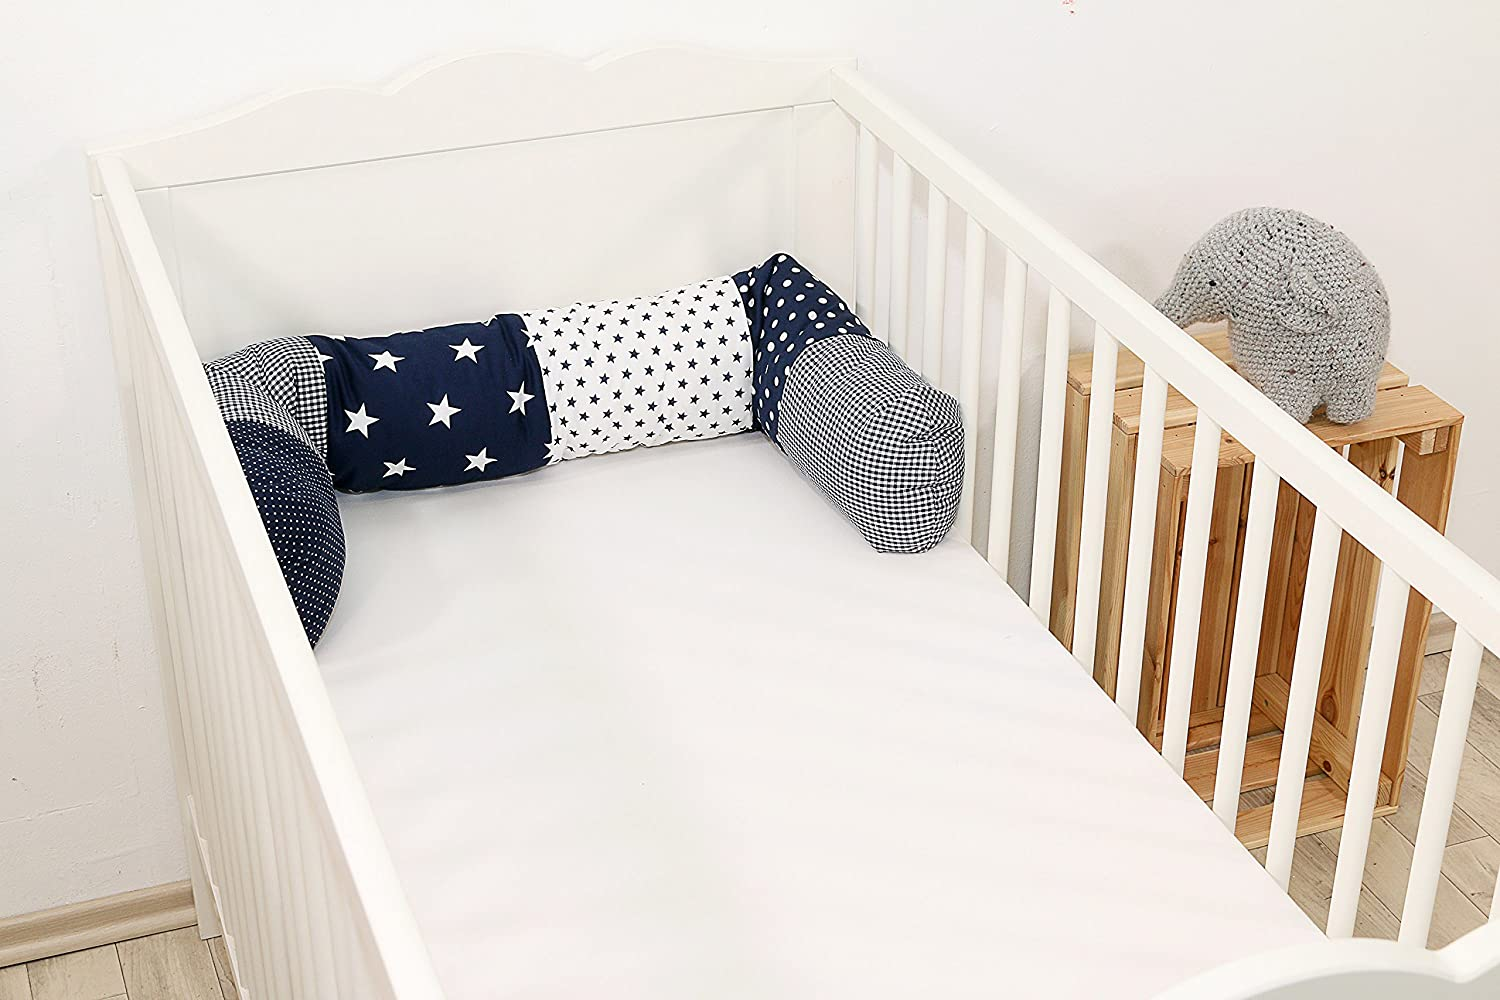 Super Soft Baby Blue//White Luxury Quilted Cotbed Mattress Enhancer with Microfibre Liner to Fit Mattress Size 140x70cm